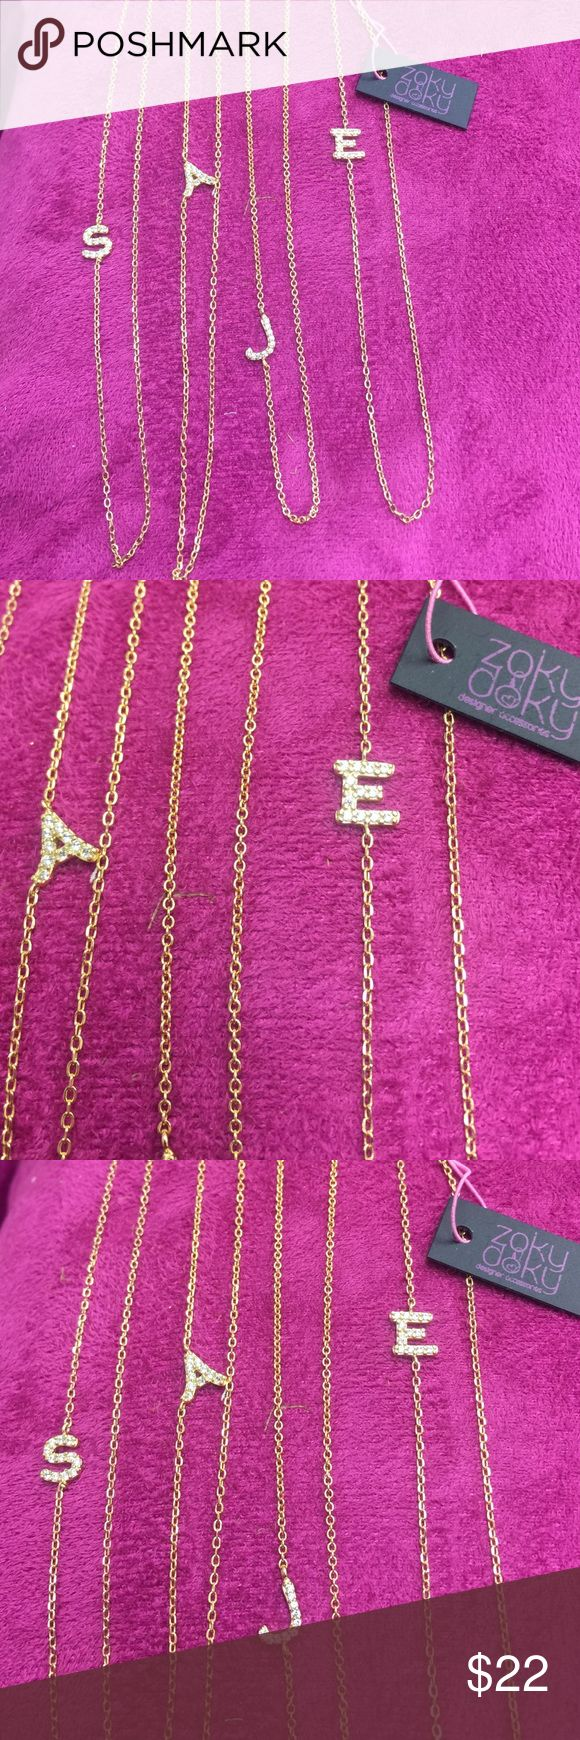 CZ Side Chain Initial Necklaces, NWT,18k Vermeil Special Price Promotion! 🛍Choose .925 Sterling Silver with CZ initial letter or 18k Gold Vermeil Necklaces. Limited Quantities please ask if I have you letter in stock. And specify color. Price FIRM unless bundled. Current stock..S,N, M,A,C,E,j, T left in the gold and the silver....c,E,J,k,M,S,R ZokyDoky Jewelry Necklaces